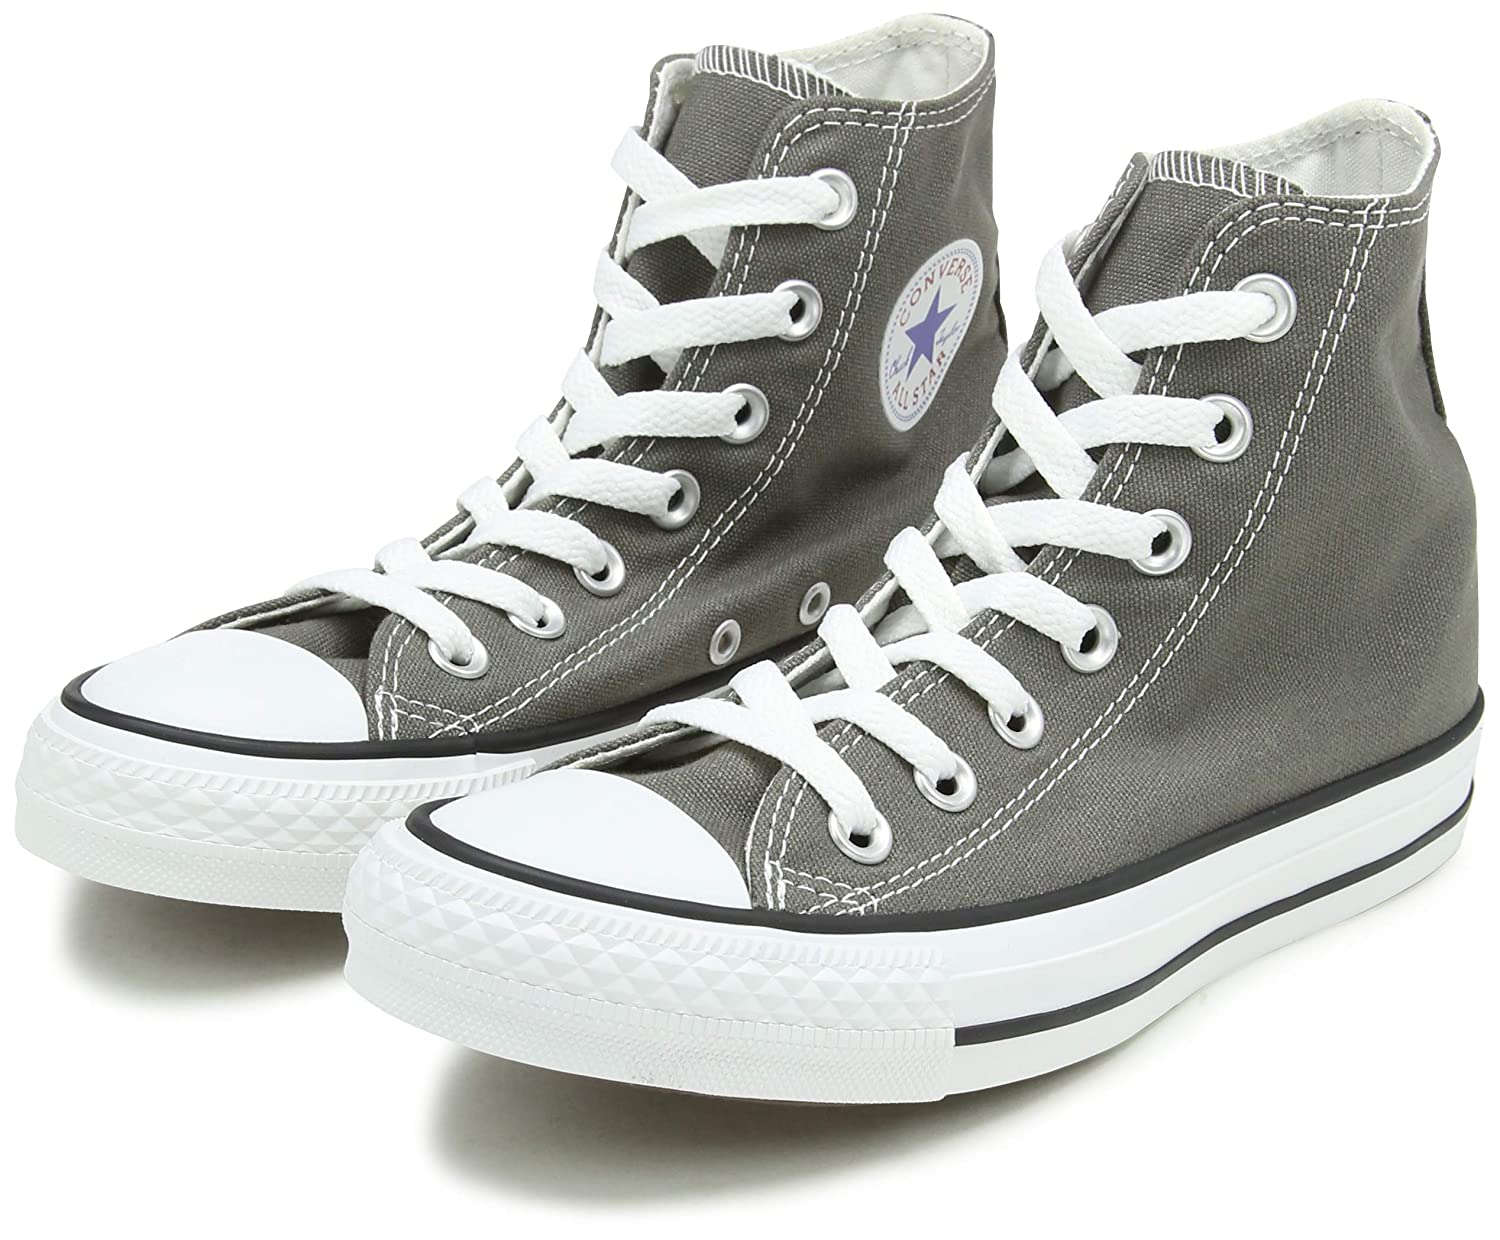 Converse Chuck Taylor All Star Speciality